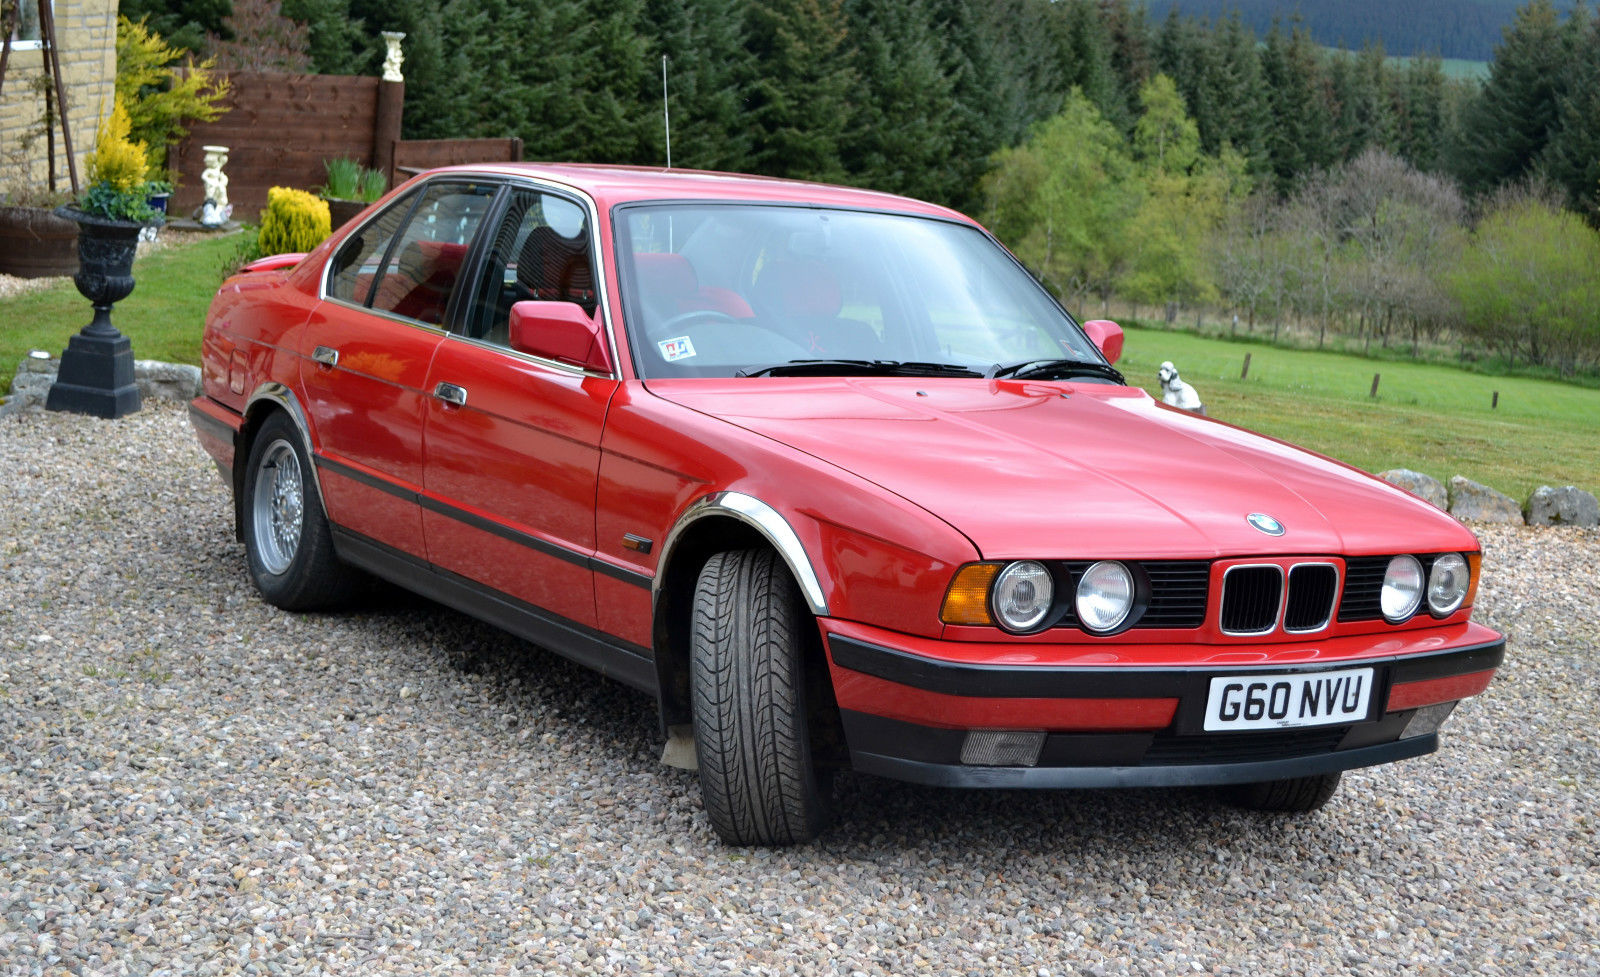 BMW - This is my 1989 E34 BMW 525i M20B25 - BMW Owners